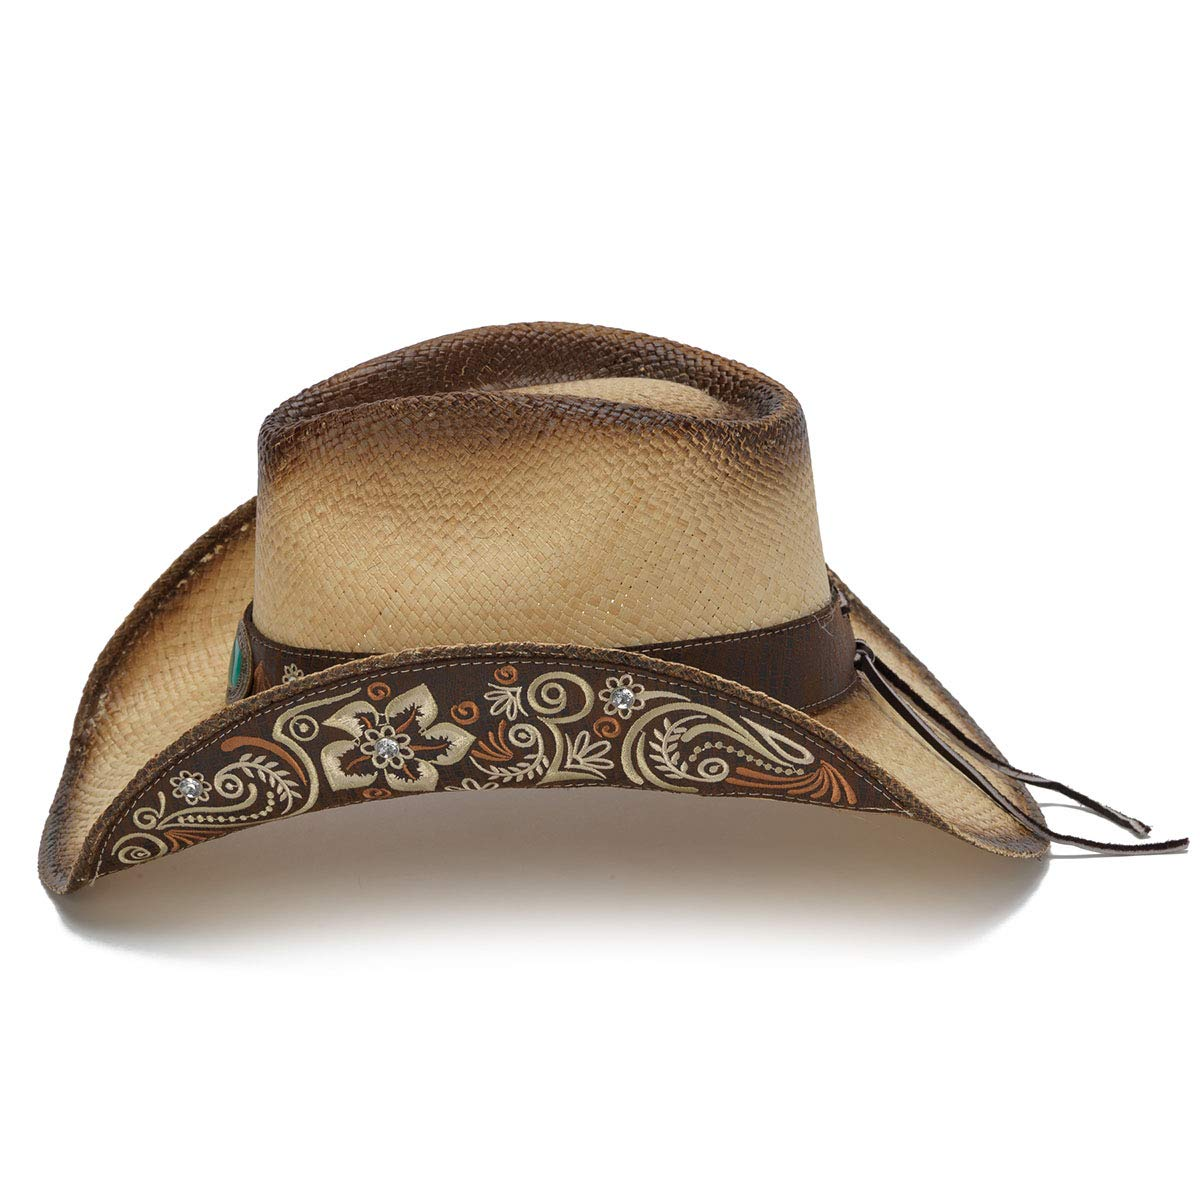 Stampede Hats Women's Sky Action Floral Embroidered Western Hat S Tea Stain by Stampede Hats (Image #3)